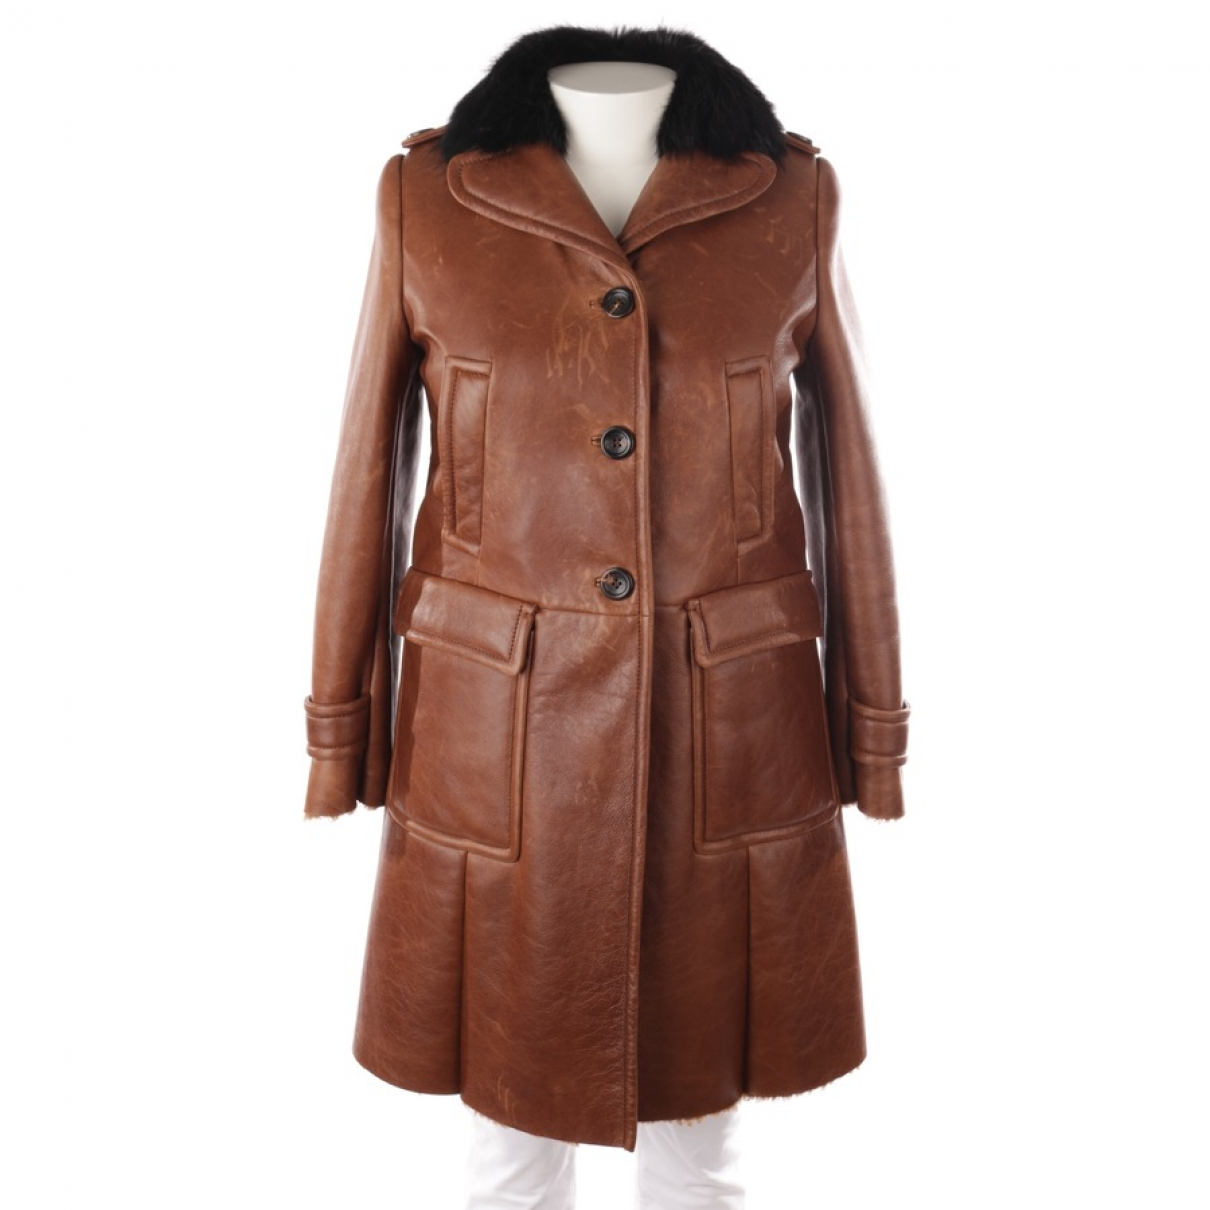 Miu Miu \N Brown Fur jacket for Women 38 FR